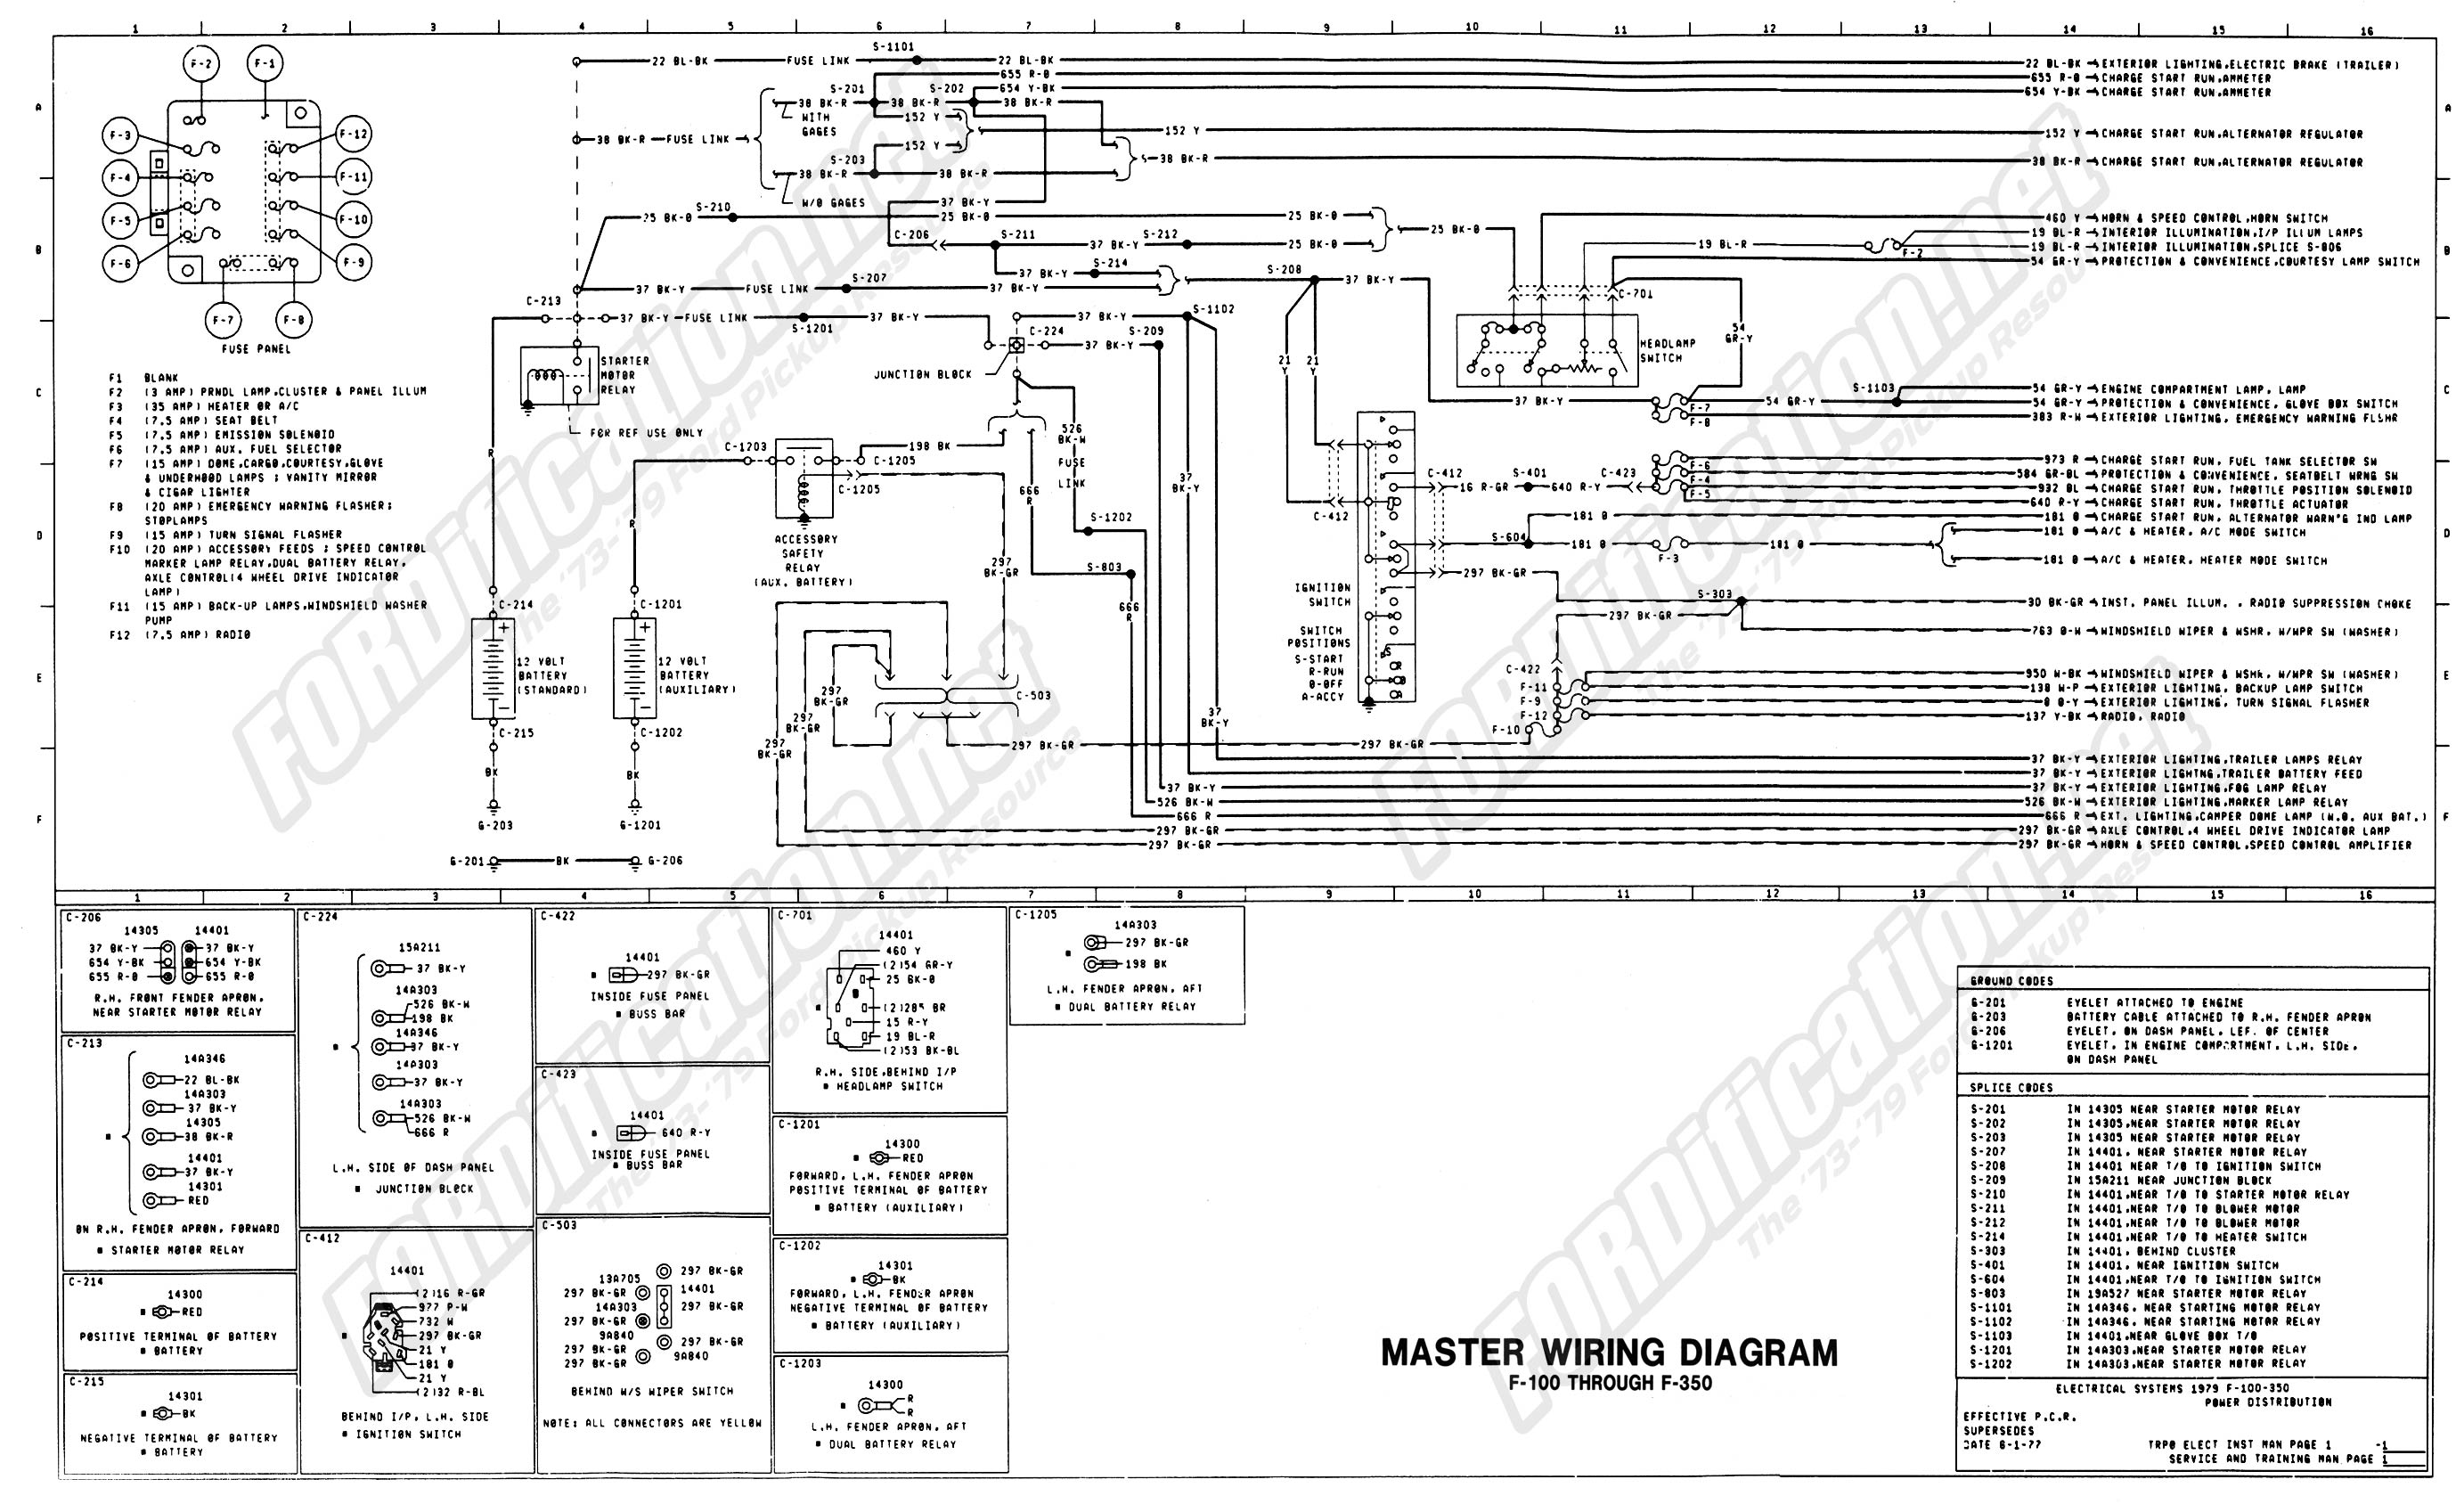 1997 ford f350 brake light wiring diagram wiring diagram and how to enable or disable ford daytime running lights